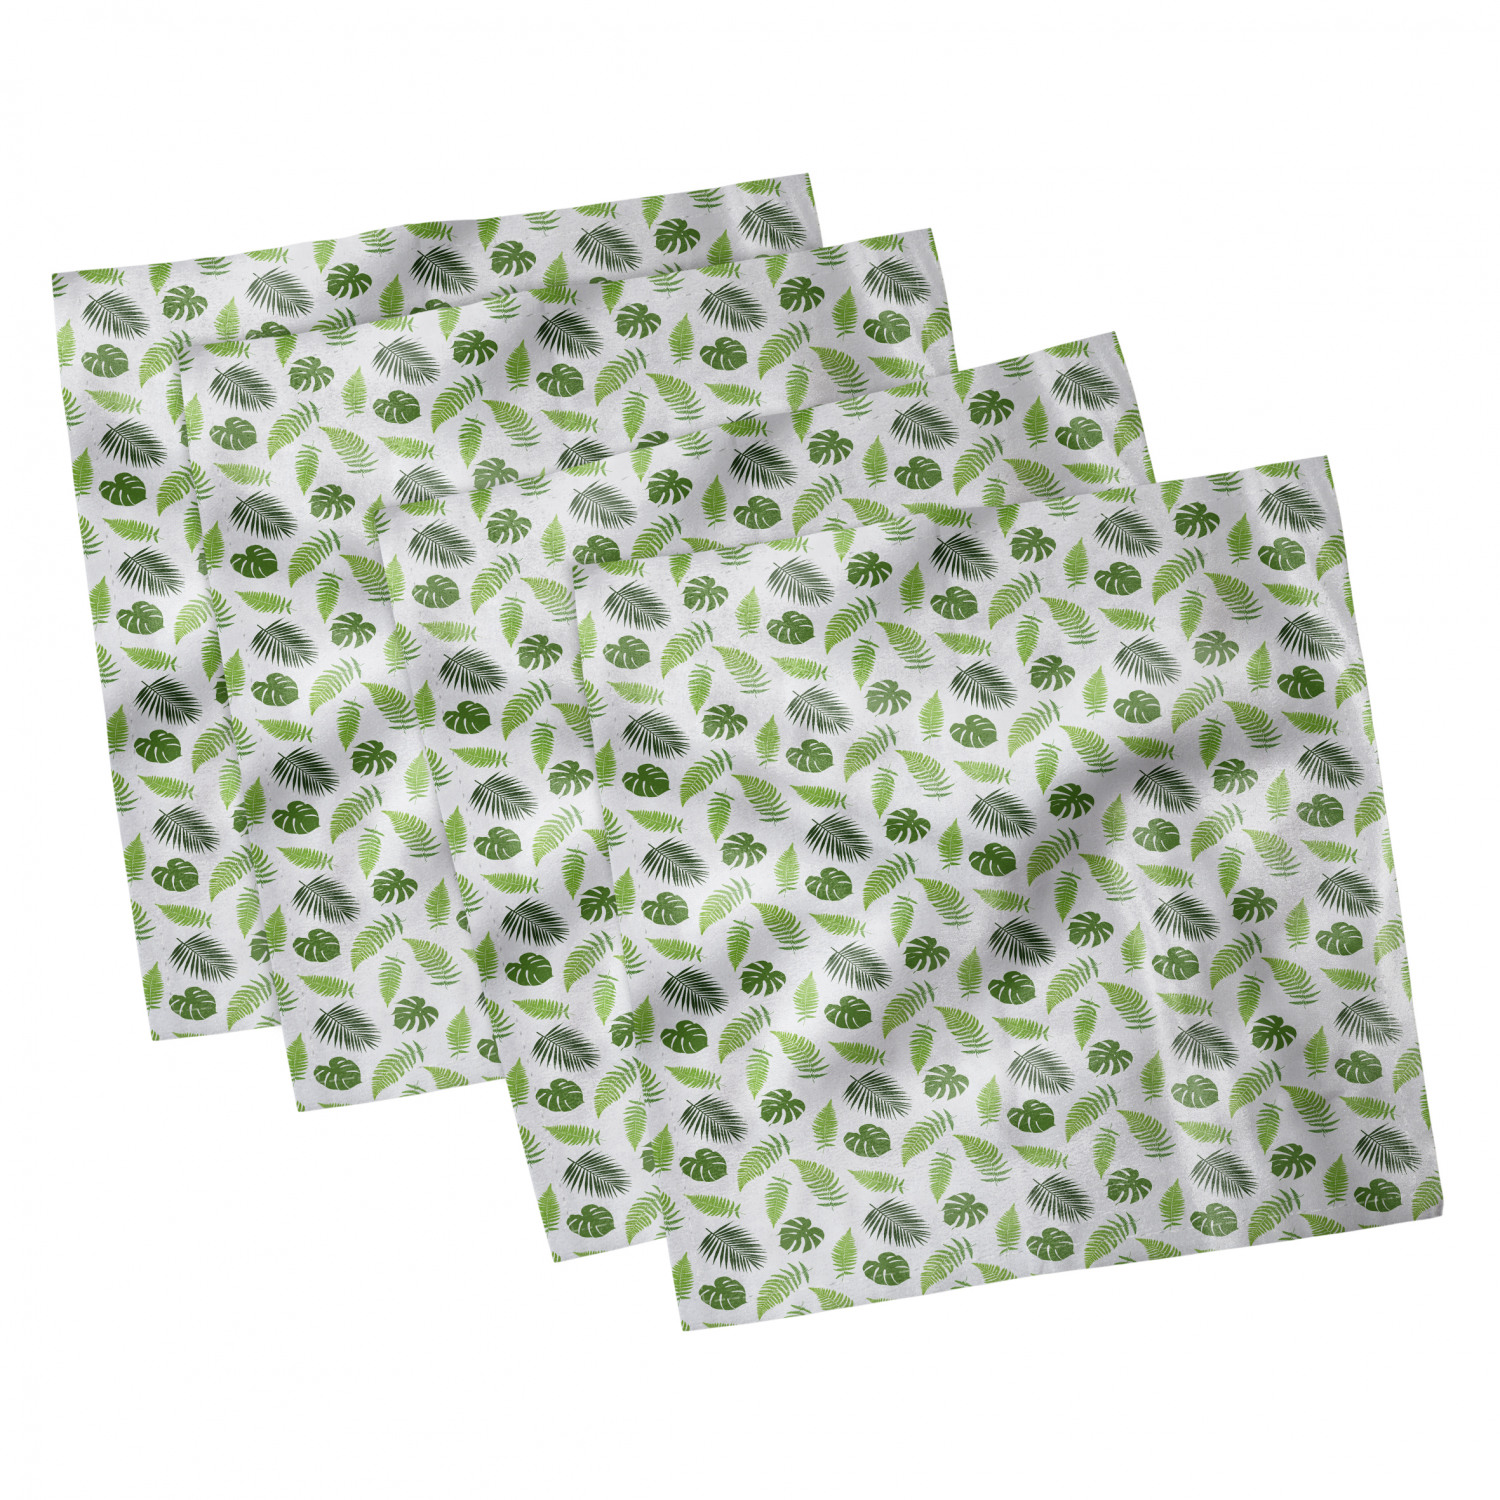 thumbnail 75 - Ambesonne-Leaves-Forest-Decorative-Satin-Napkins-Set-of-4-Party-Dinner-Fabric